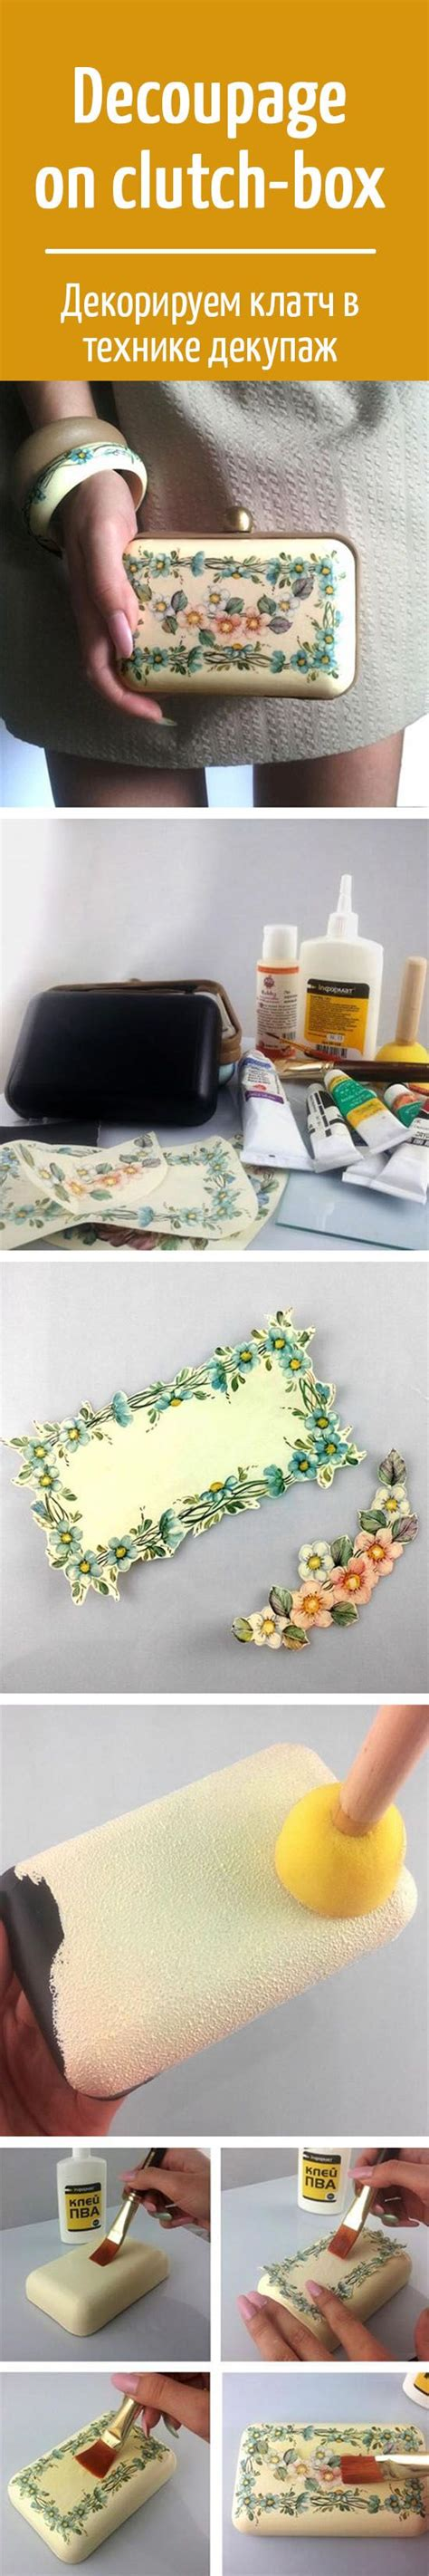 tutorial x decoupage decoupage on clutch box tutorial нестандартный подход